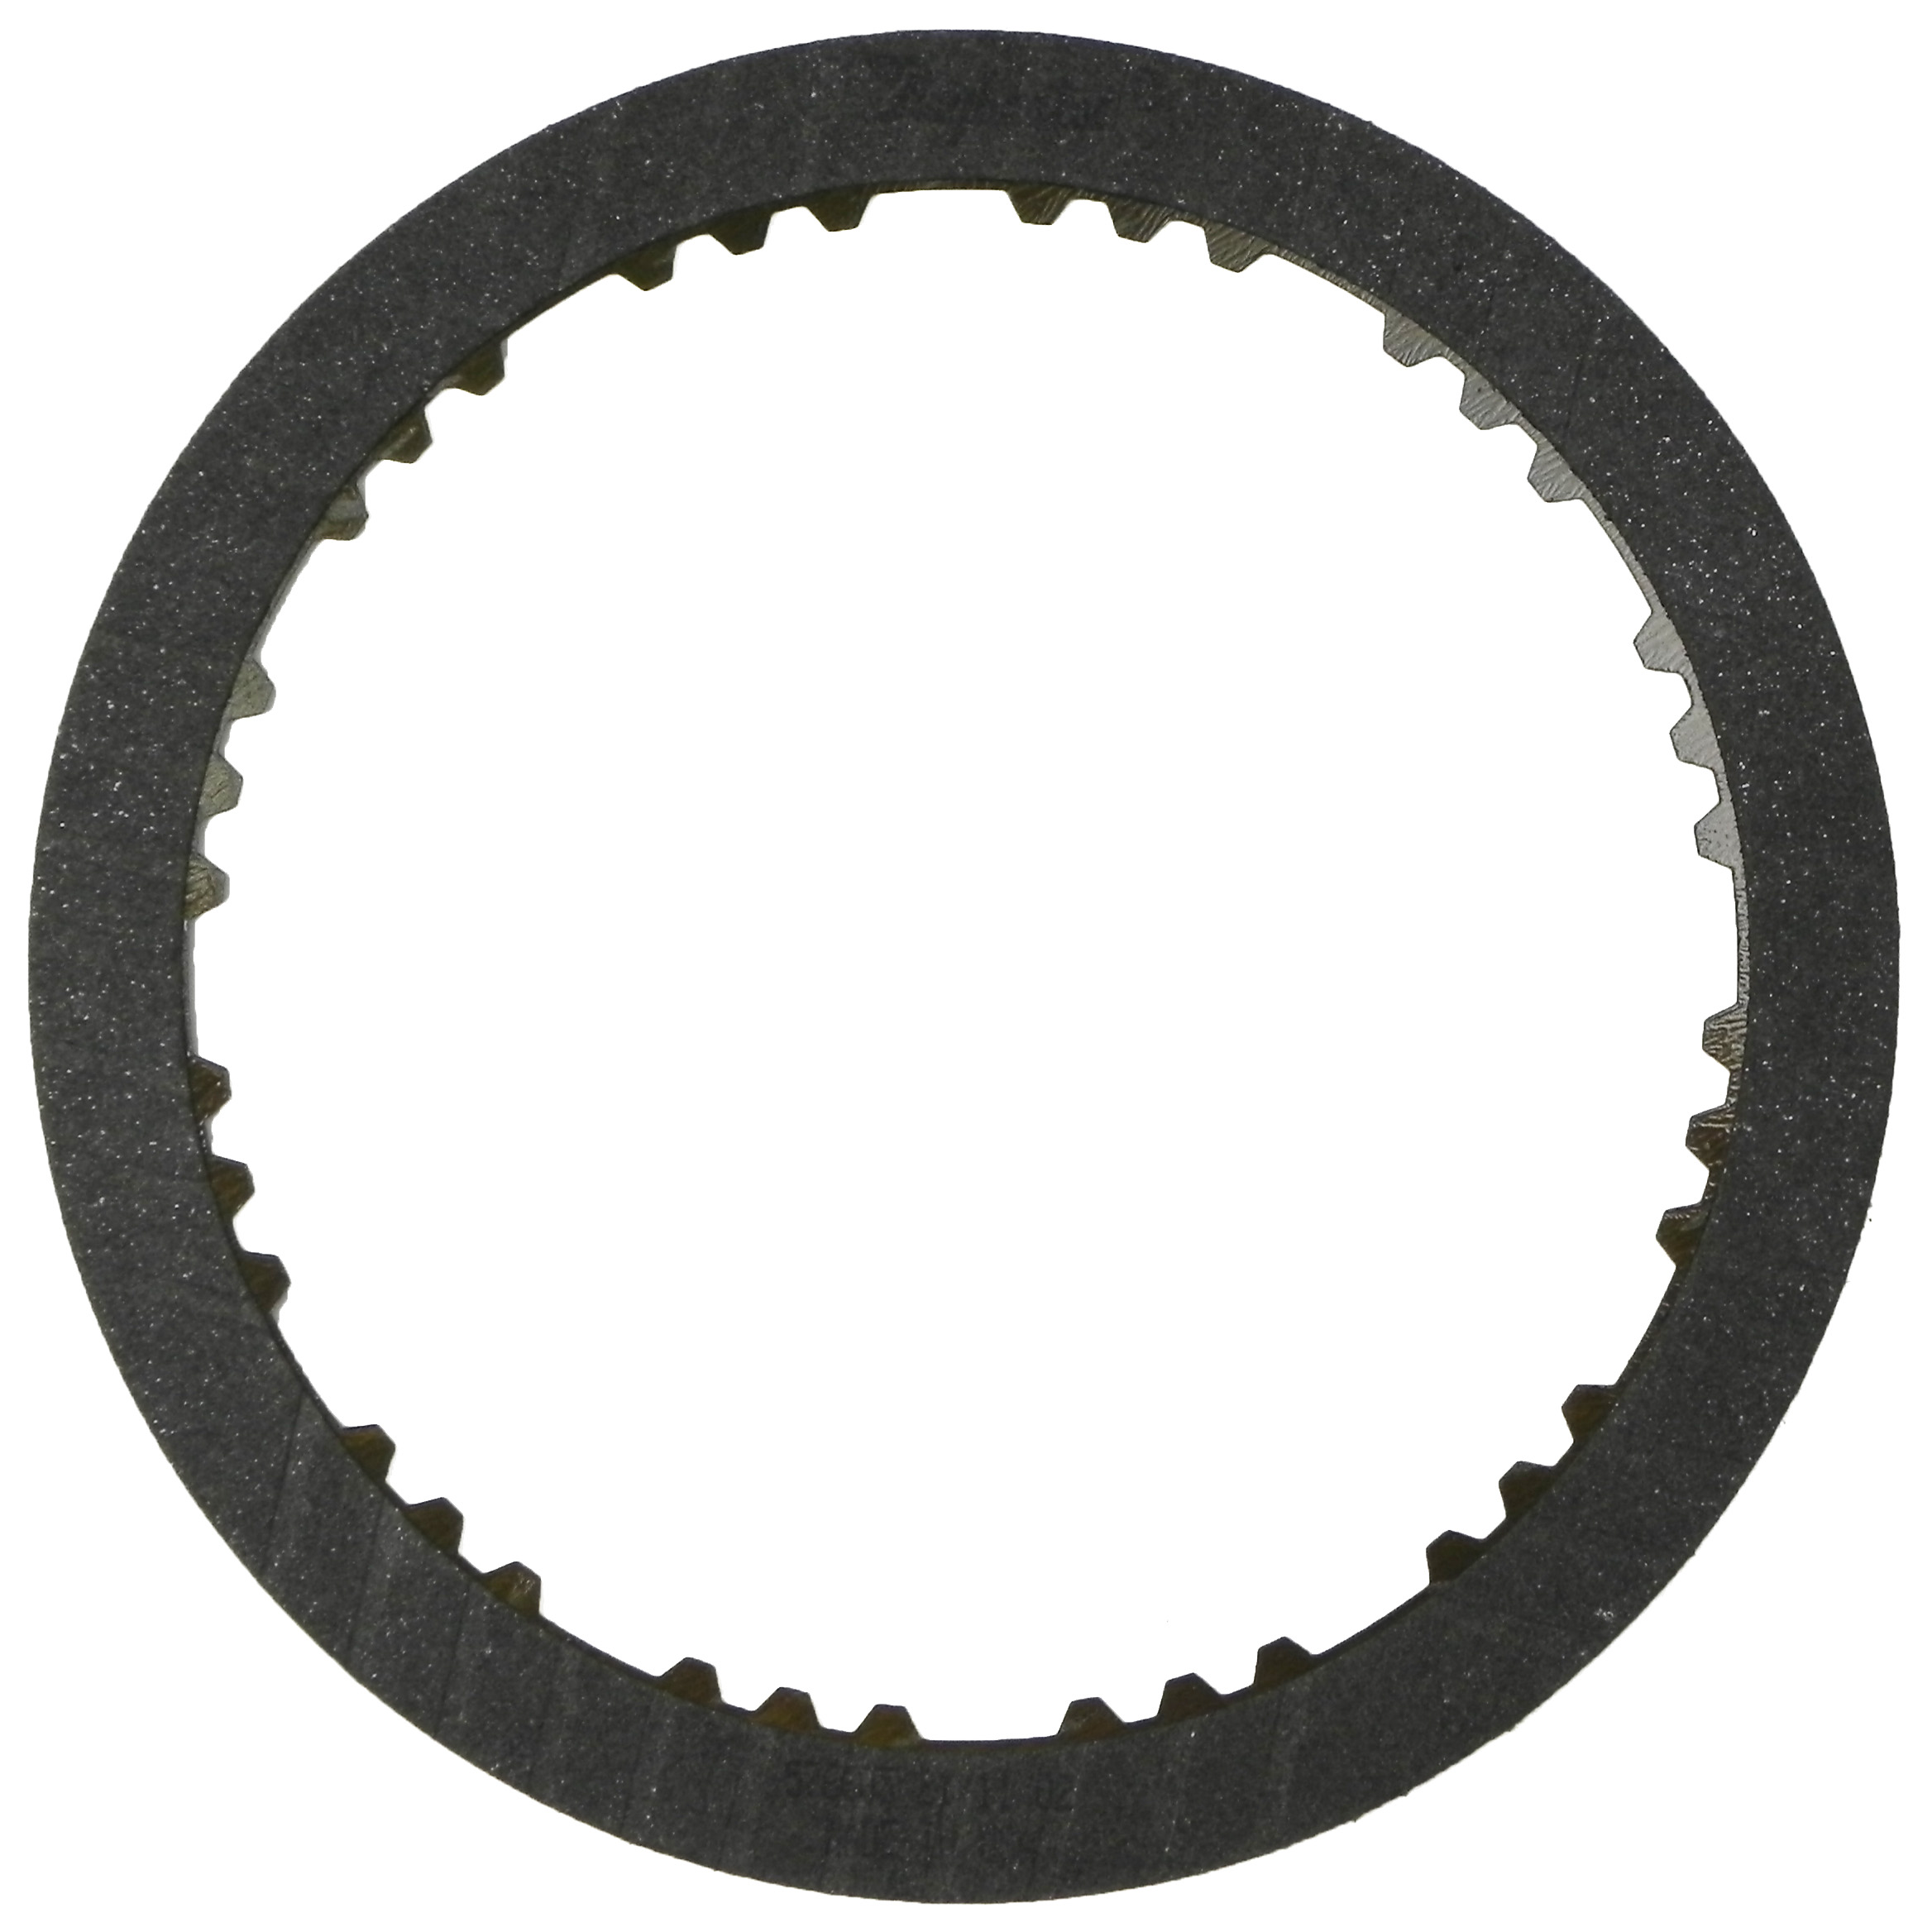 R576605 | 1994-ON Friction Clutch Plate High Energy 2nd Brake High Energy A541E